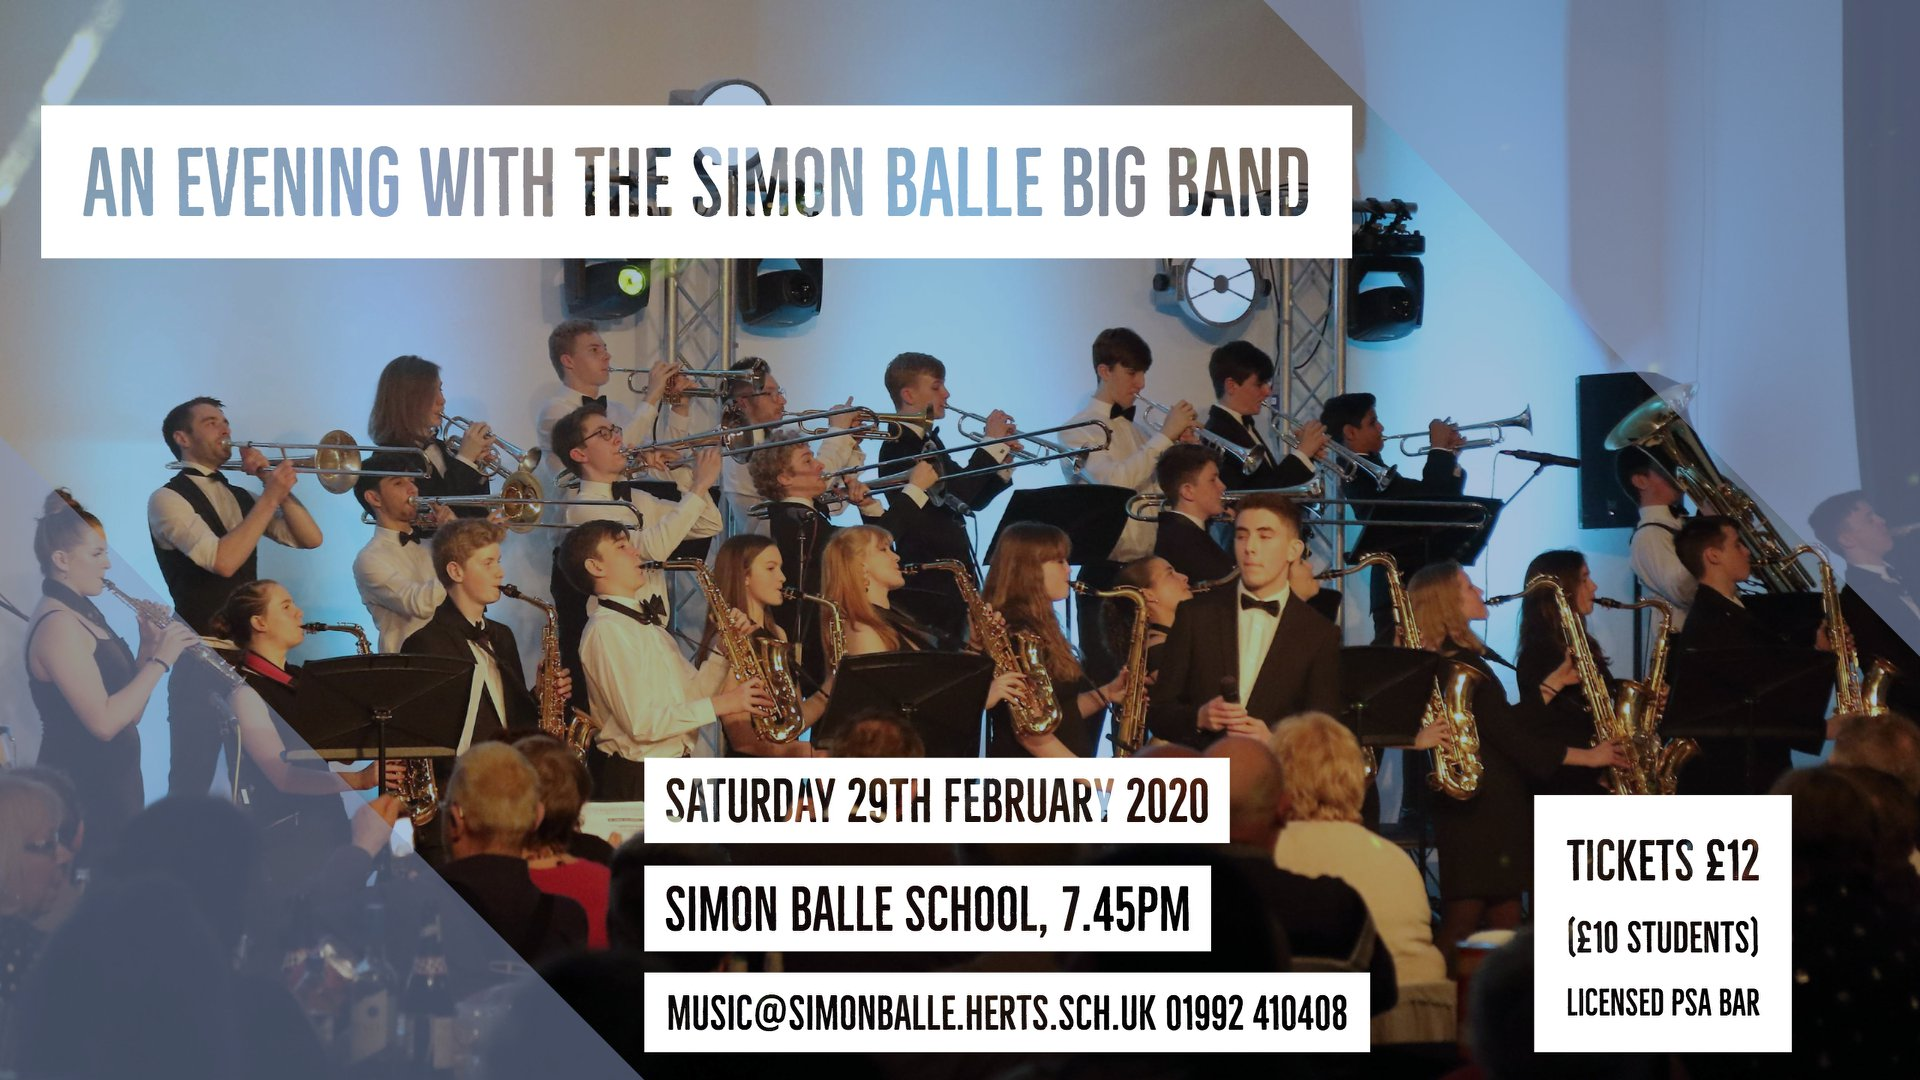 An evening with Simon Balle Big Band